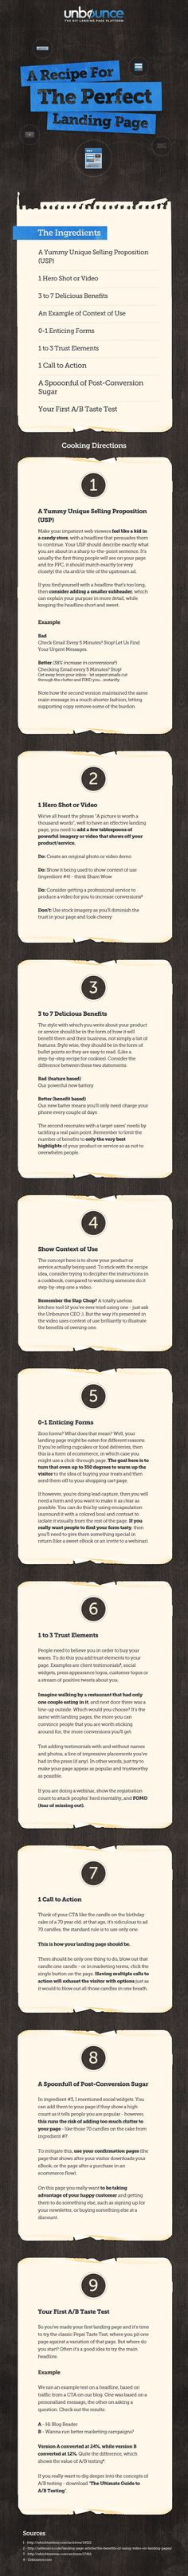 Simply Awesome! The Perfect Landing Page Recipe